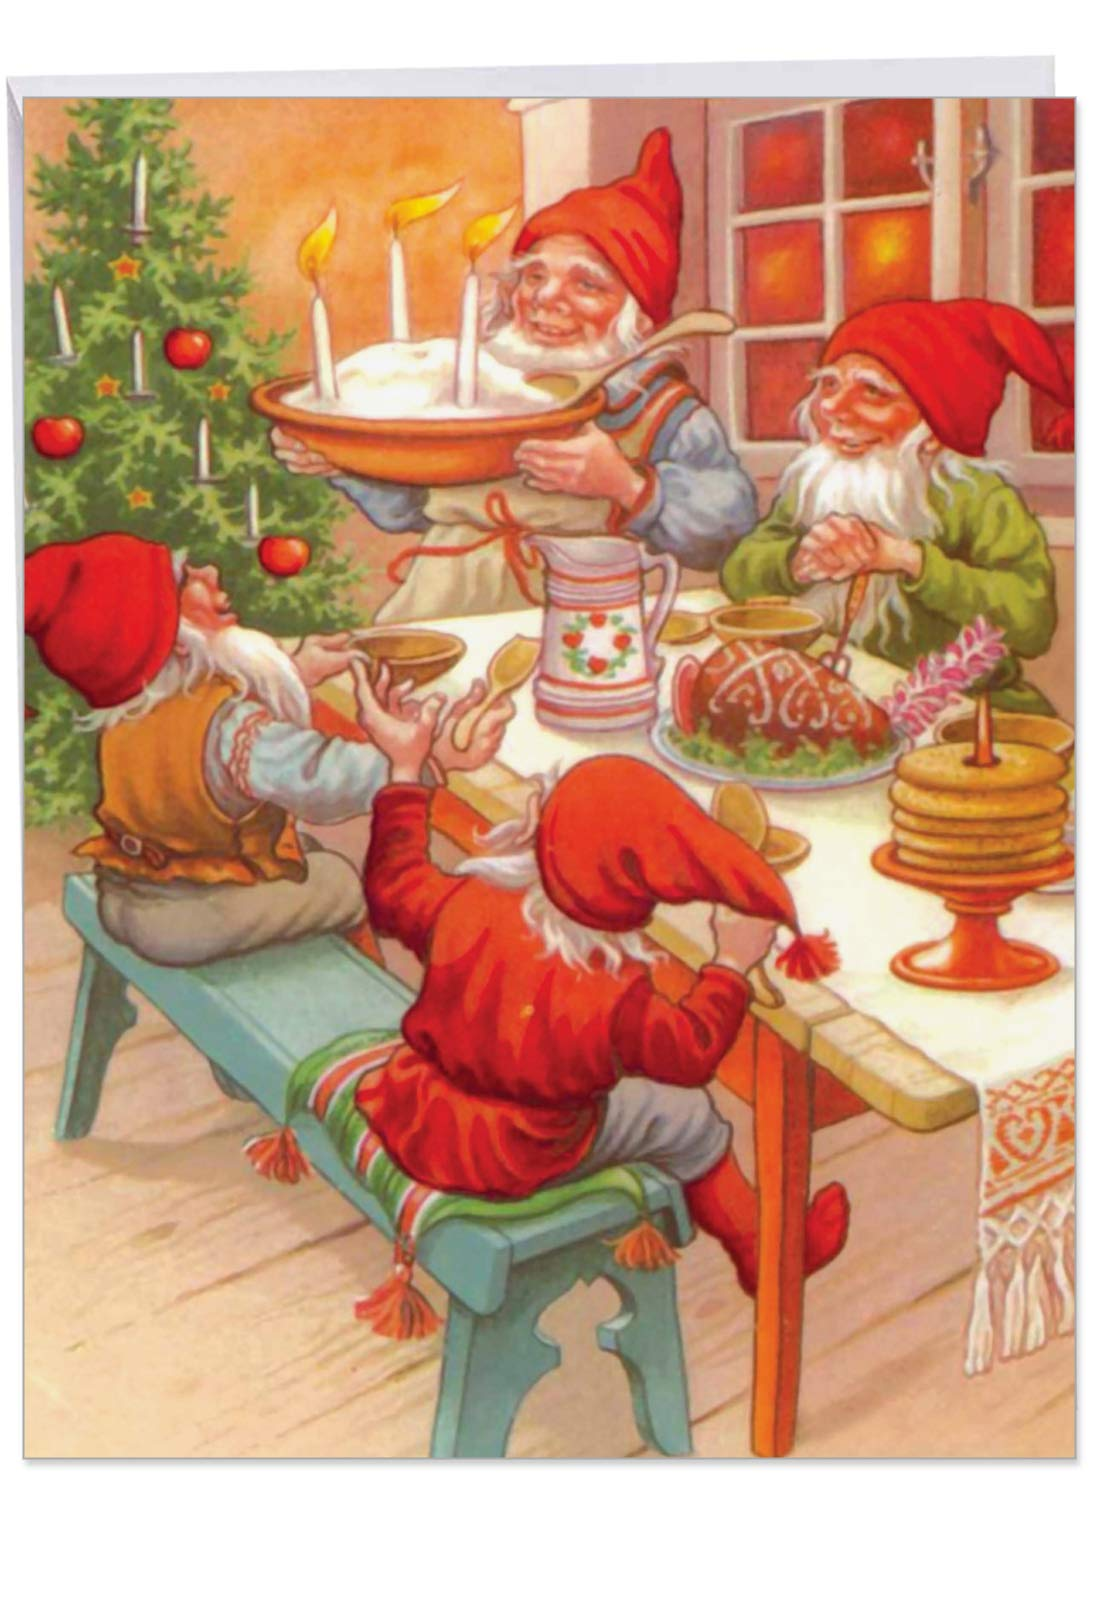 Gnome for the Holidays - Retro Merry Christmas Card with Envelope (Big 8.5 x 11 Inch) - Classic Gnome Family Dinner, Sweet Season's Greetings - Vintage Happy Holidays Stationery J6440BXSG